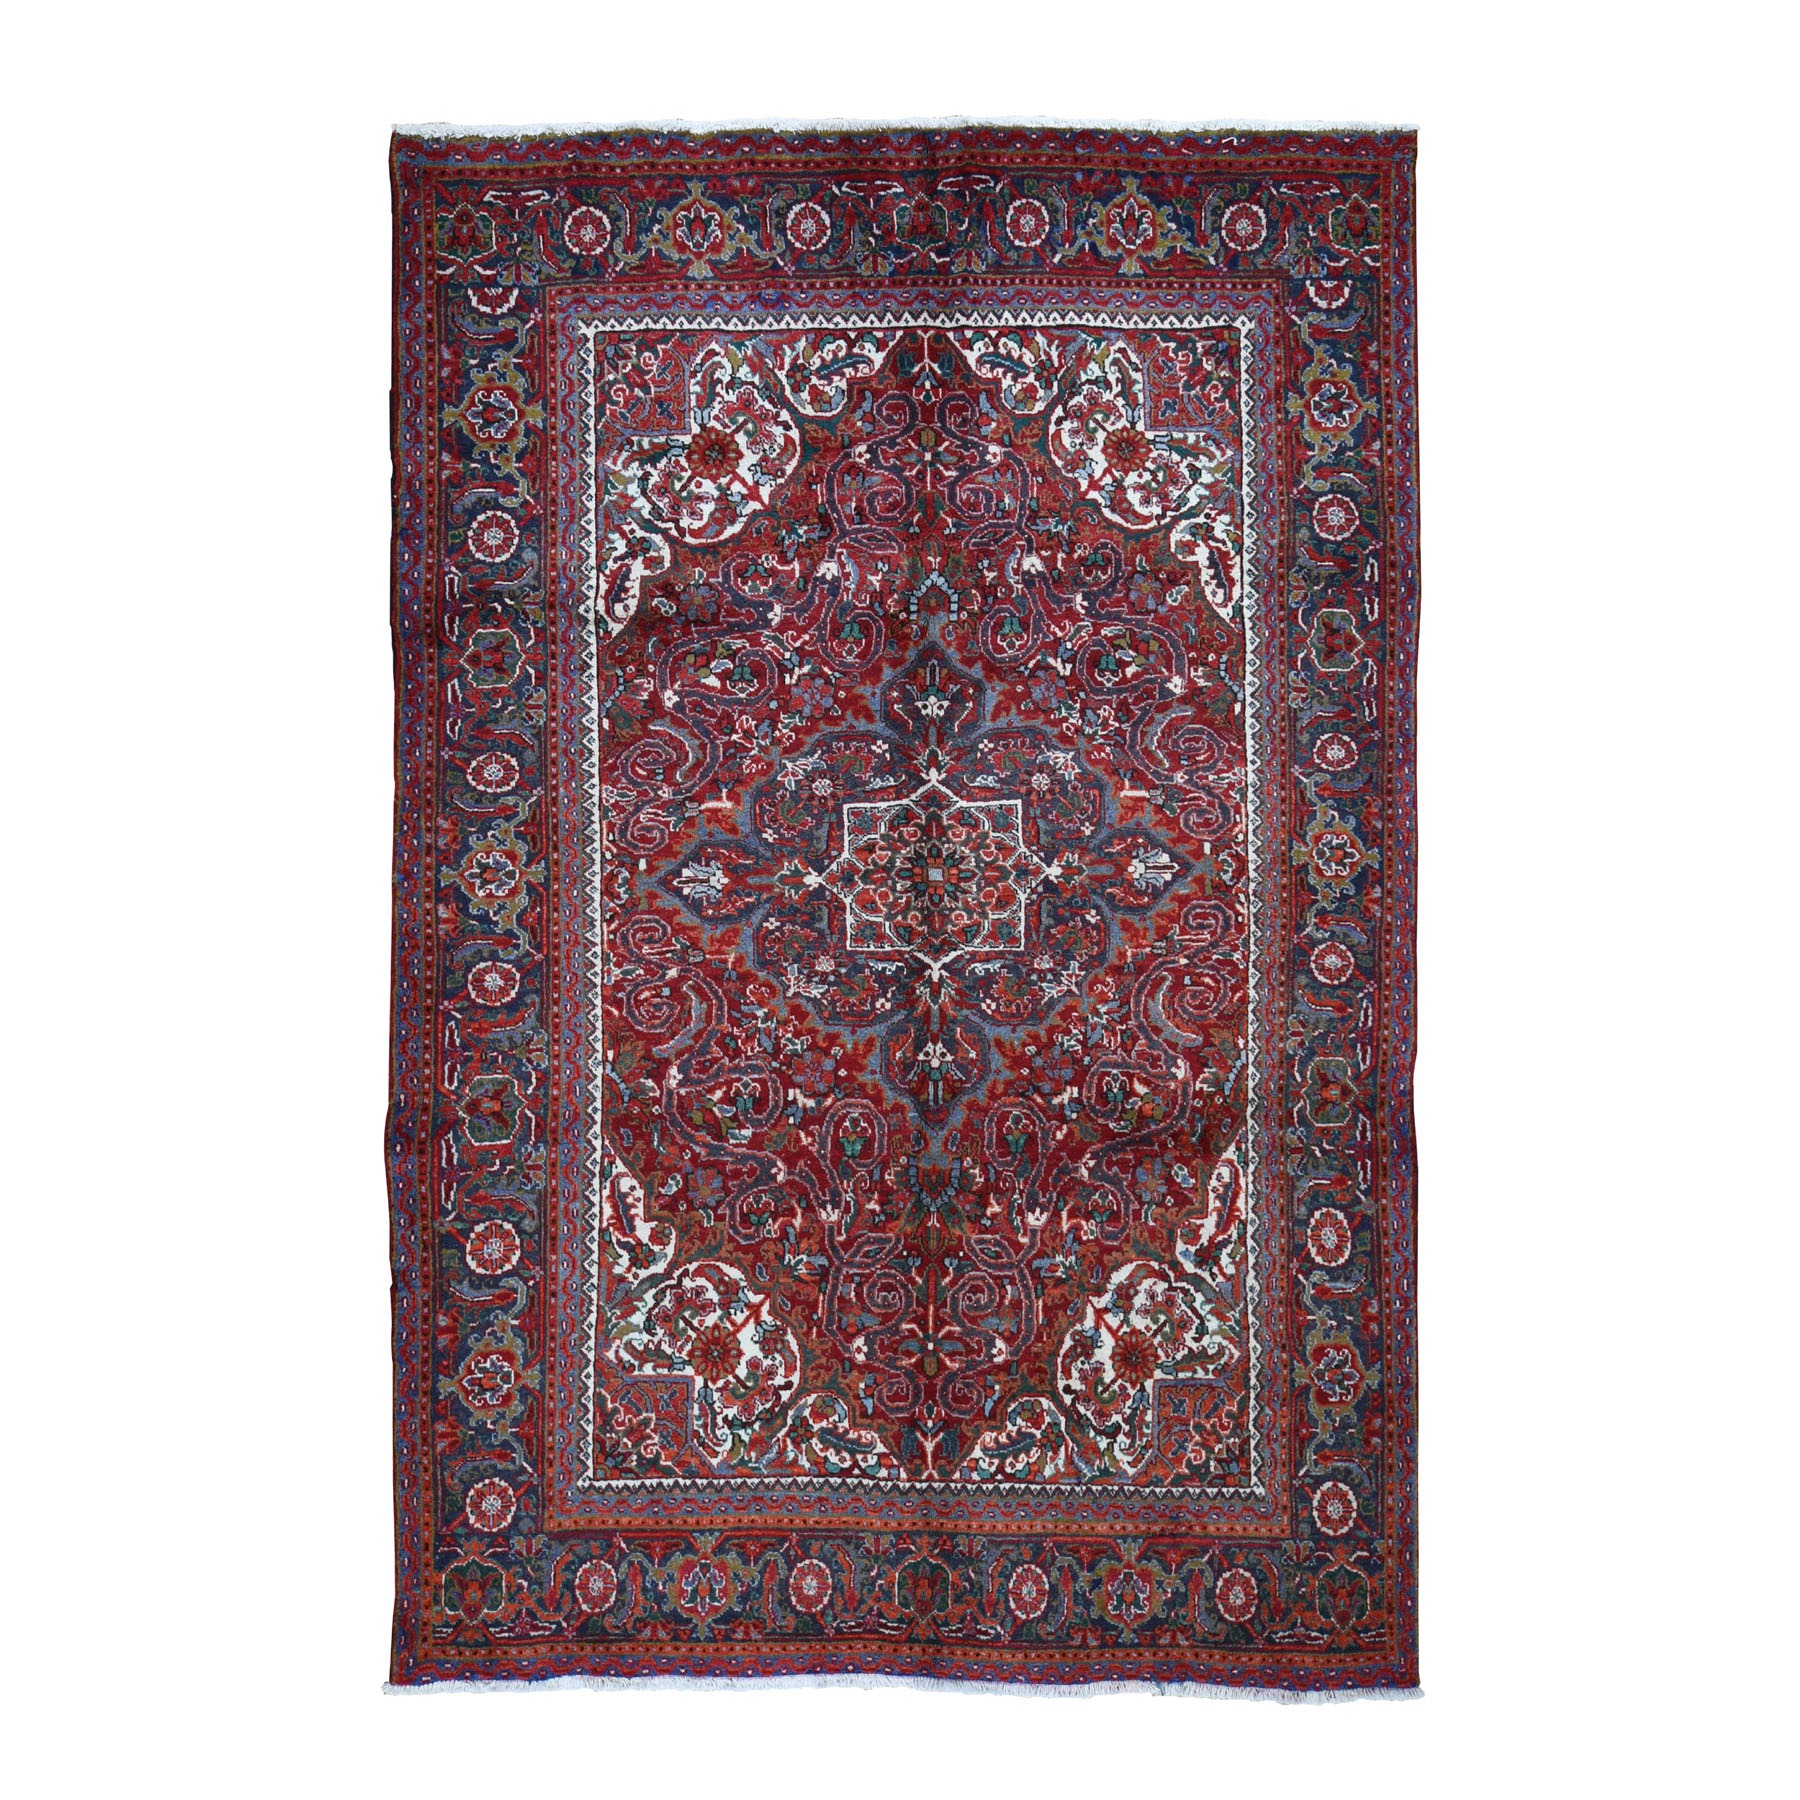 "6'10""x9'8"" Red Semi Antique Persian Heriz Flower Design Thick and Plush Hand Knotted Oriental Rug"